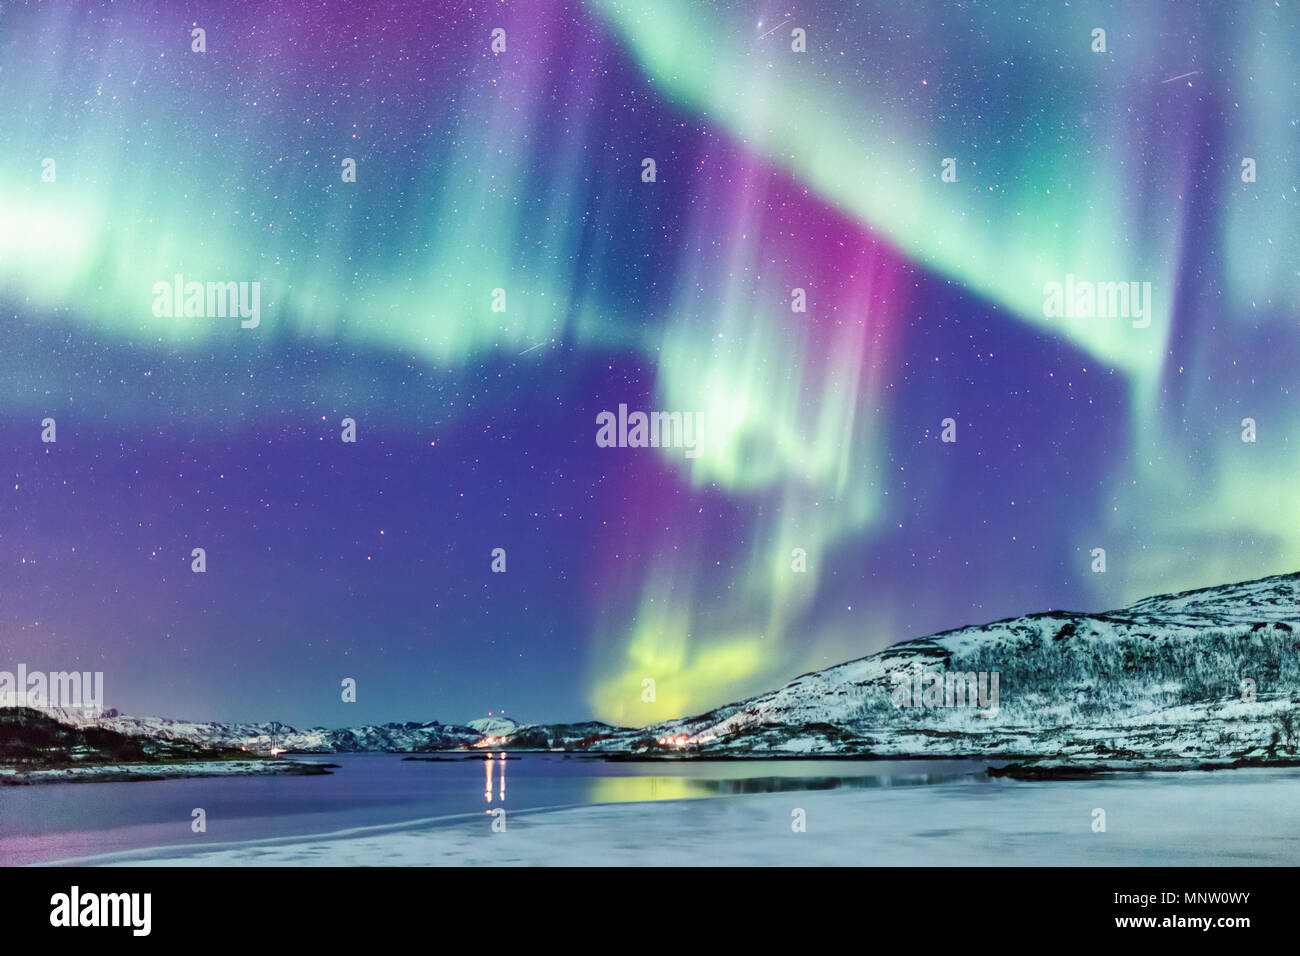 Incredible Northern lights Aurora Borealis activity above the coast in Norway Stock Photo